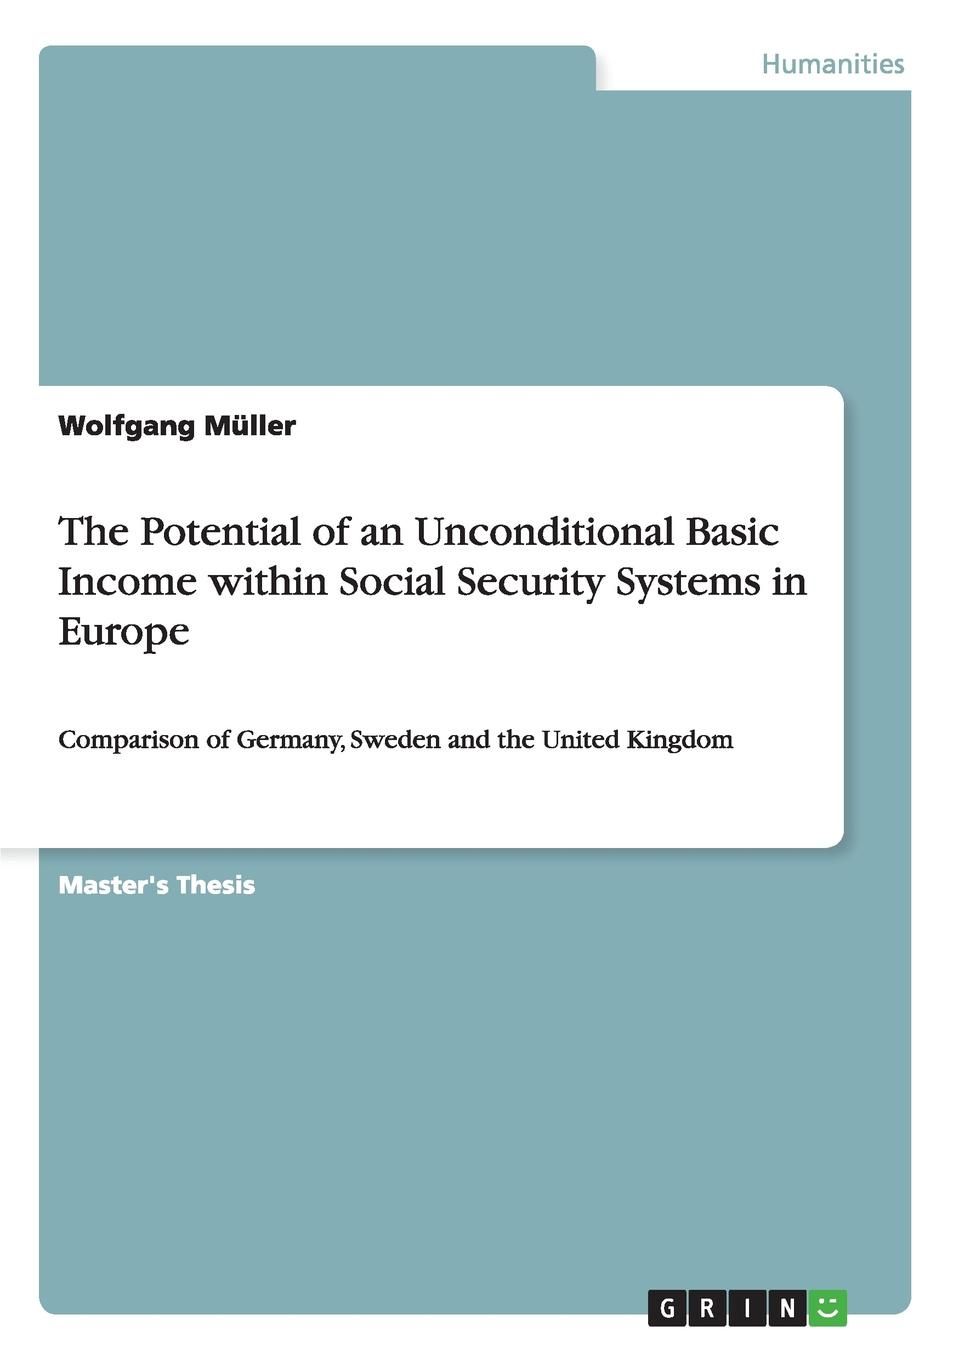 Wolfgang Müller The Potential of an Unconditional Basic Income within Social Security Systems in Europe christine whitehead social housing in europe